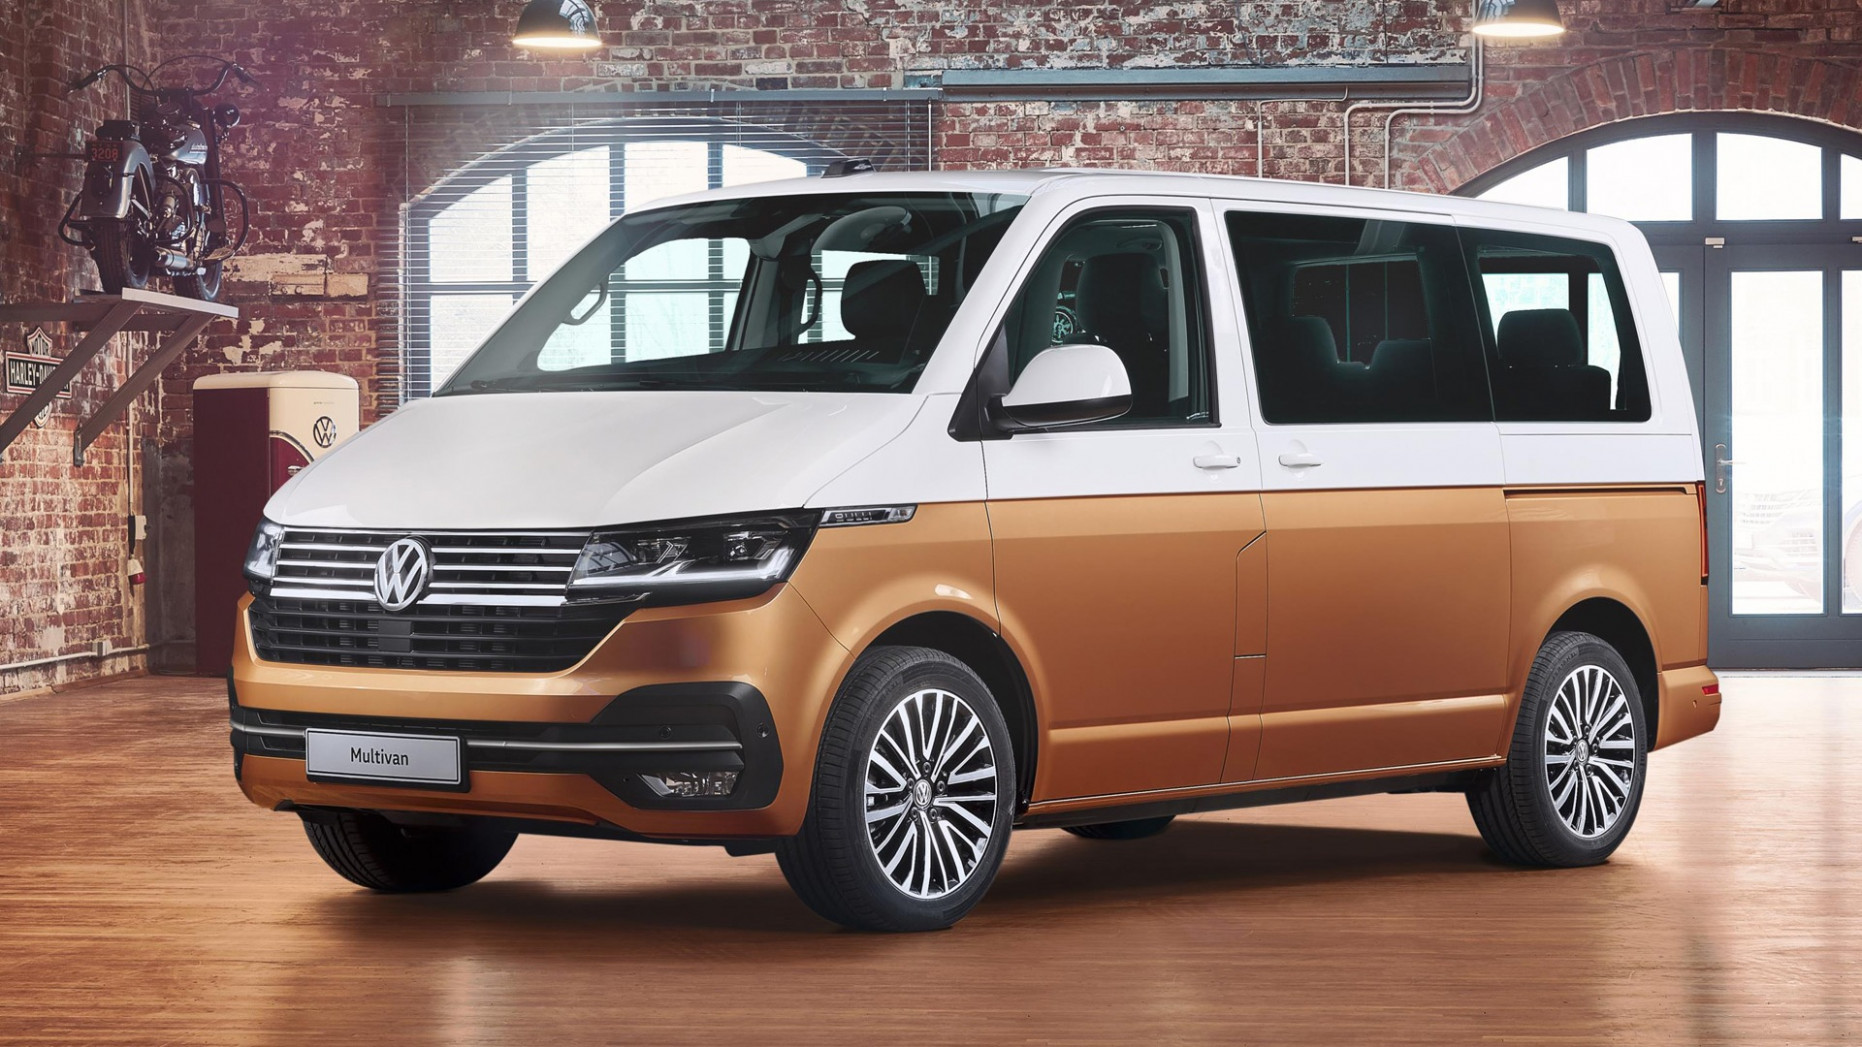 100 Volkswagen Transporter (T100.10) is the Bus we won't see